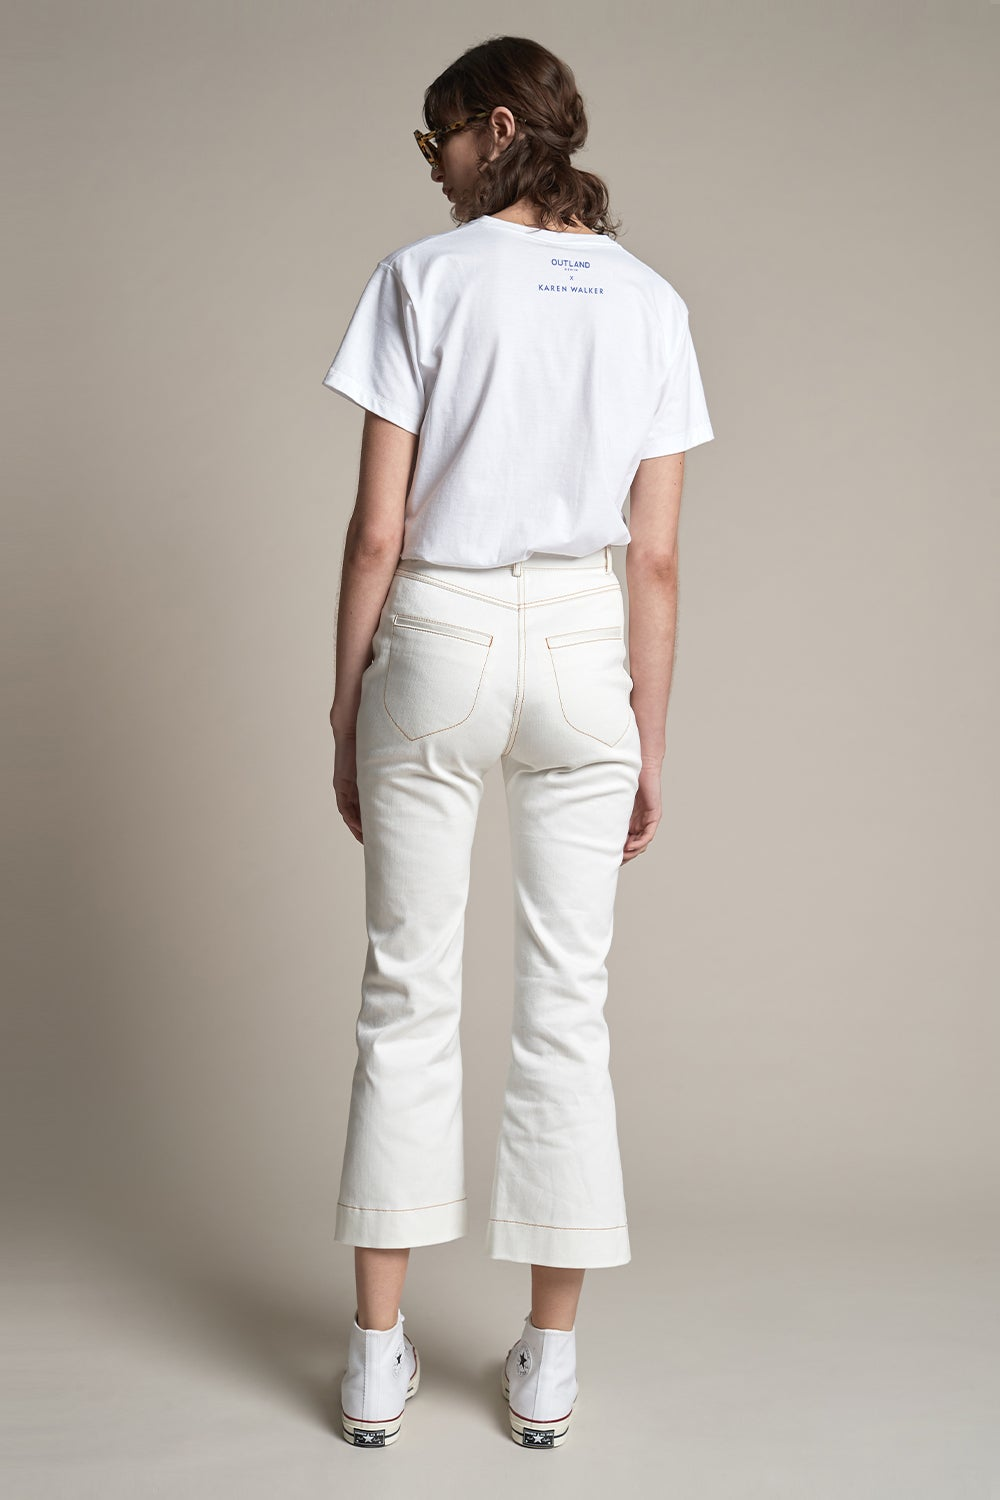 Outland Denim x Karen Walker Sage Jean